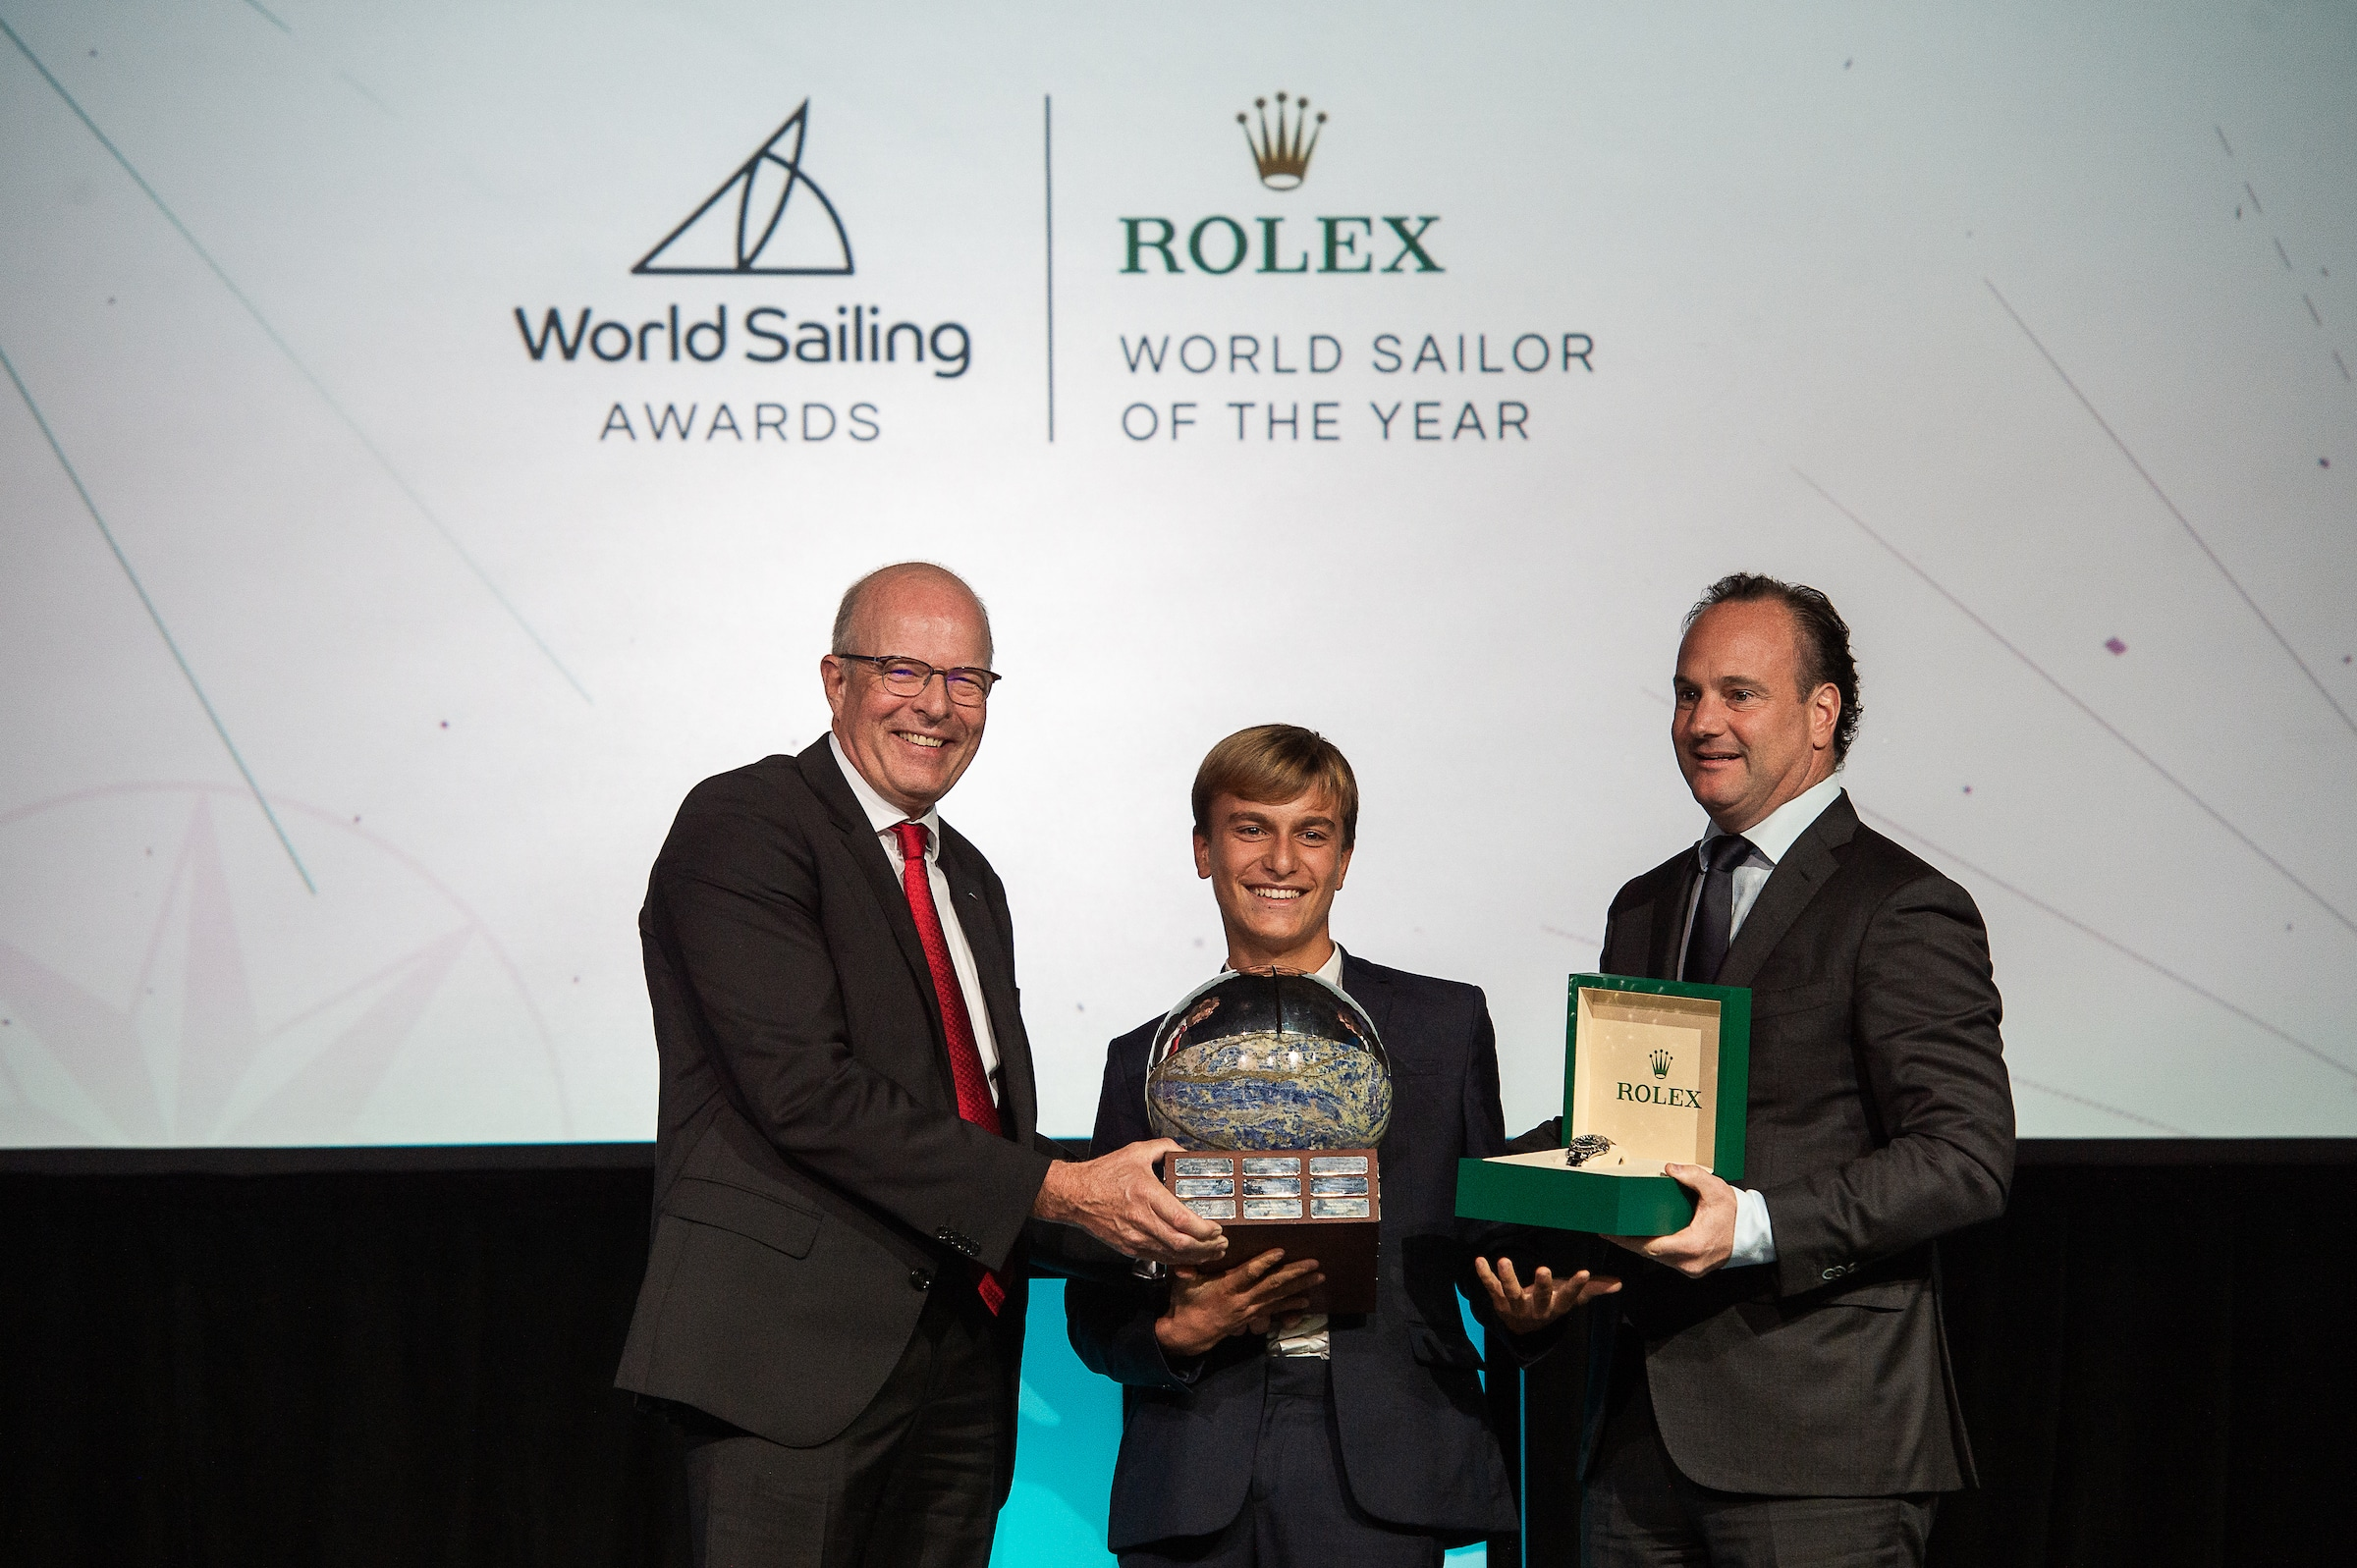 Marco Gradoni ROLEX WORLD SAILOR OF THE YEAR 2019